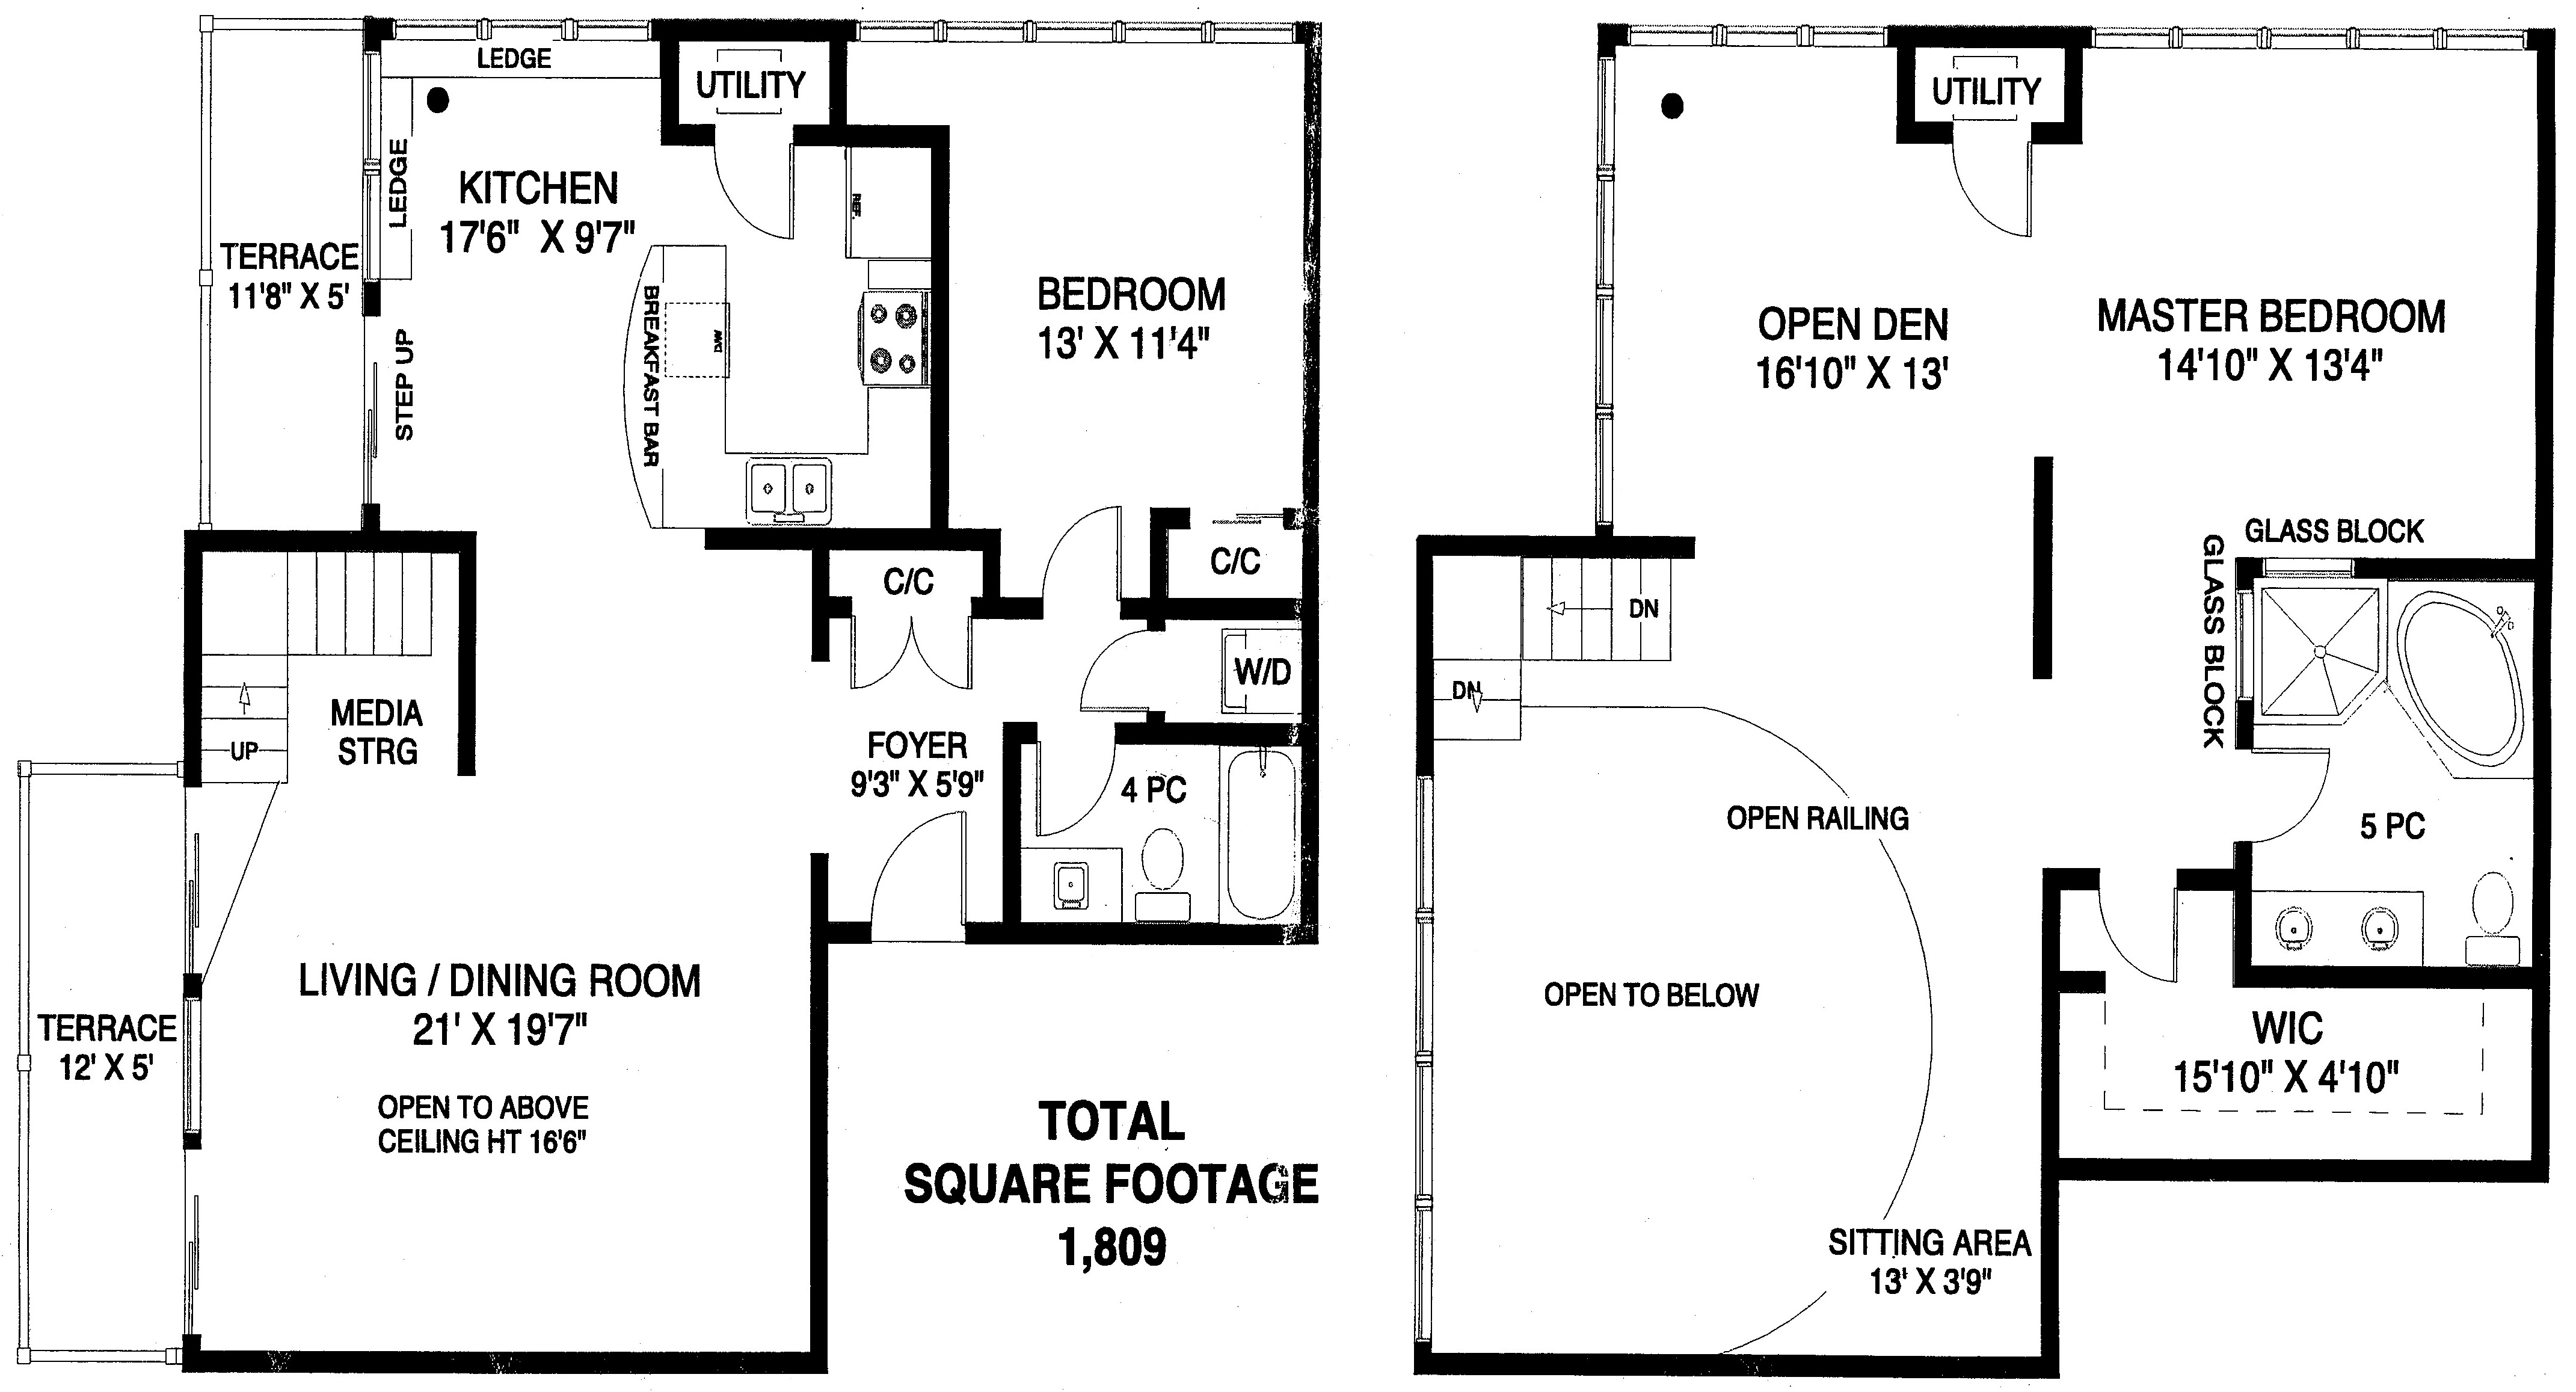 Security gate house plans - House and home design